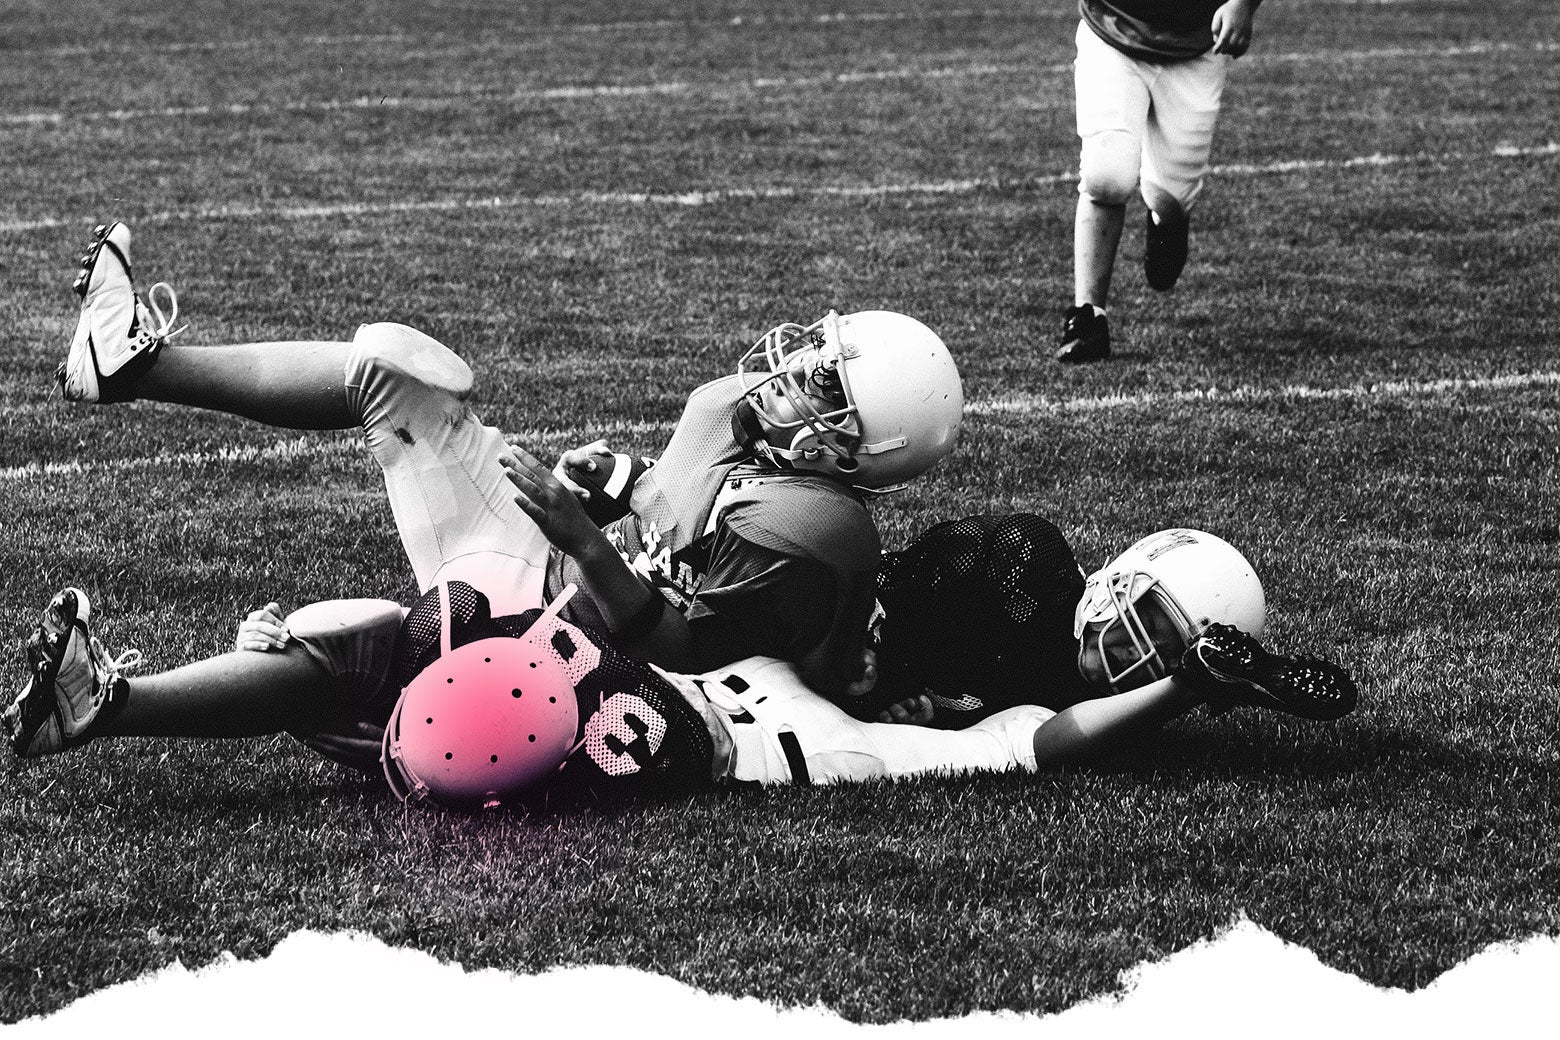 Photo illustration: A football player lies on the ground with his helmet highlighted to suggest a possible concussion.